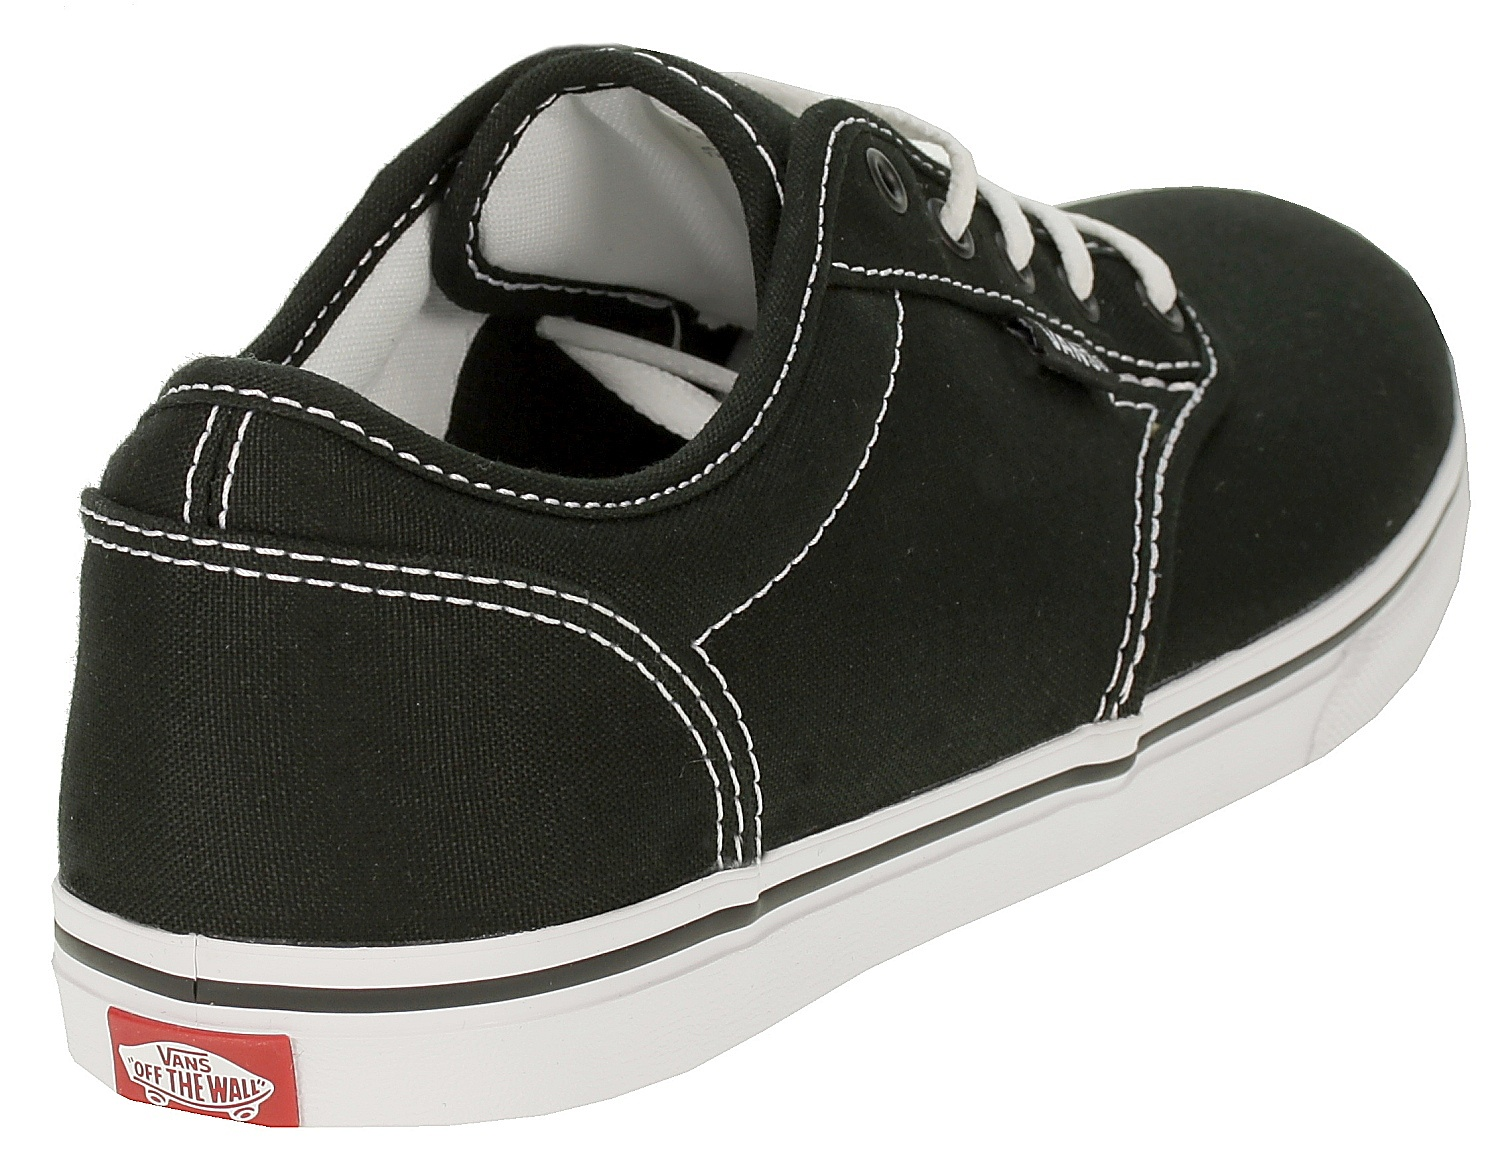 boty Vans Atwood Low - Canvas/Black/White - Snowboard shop ...